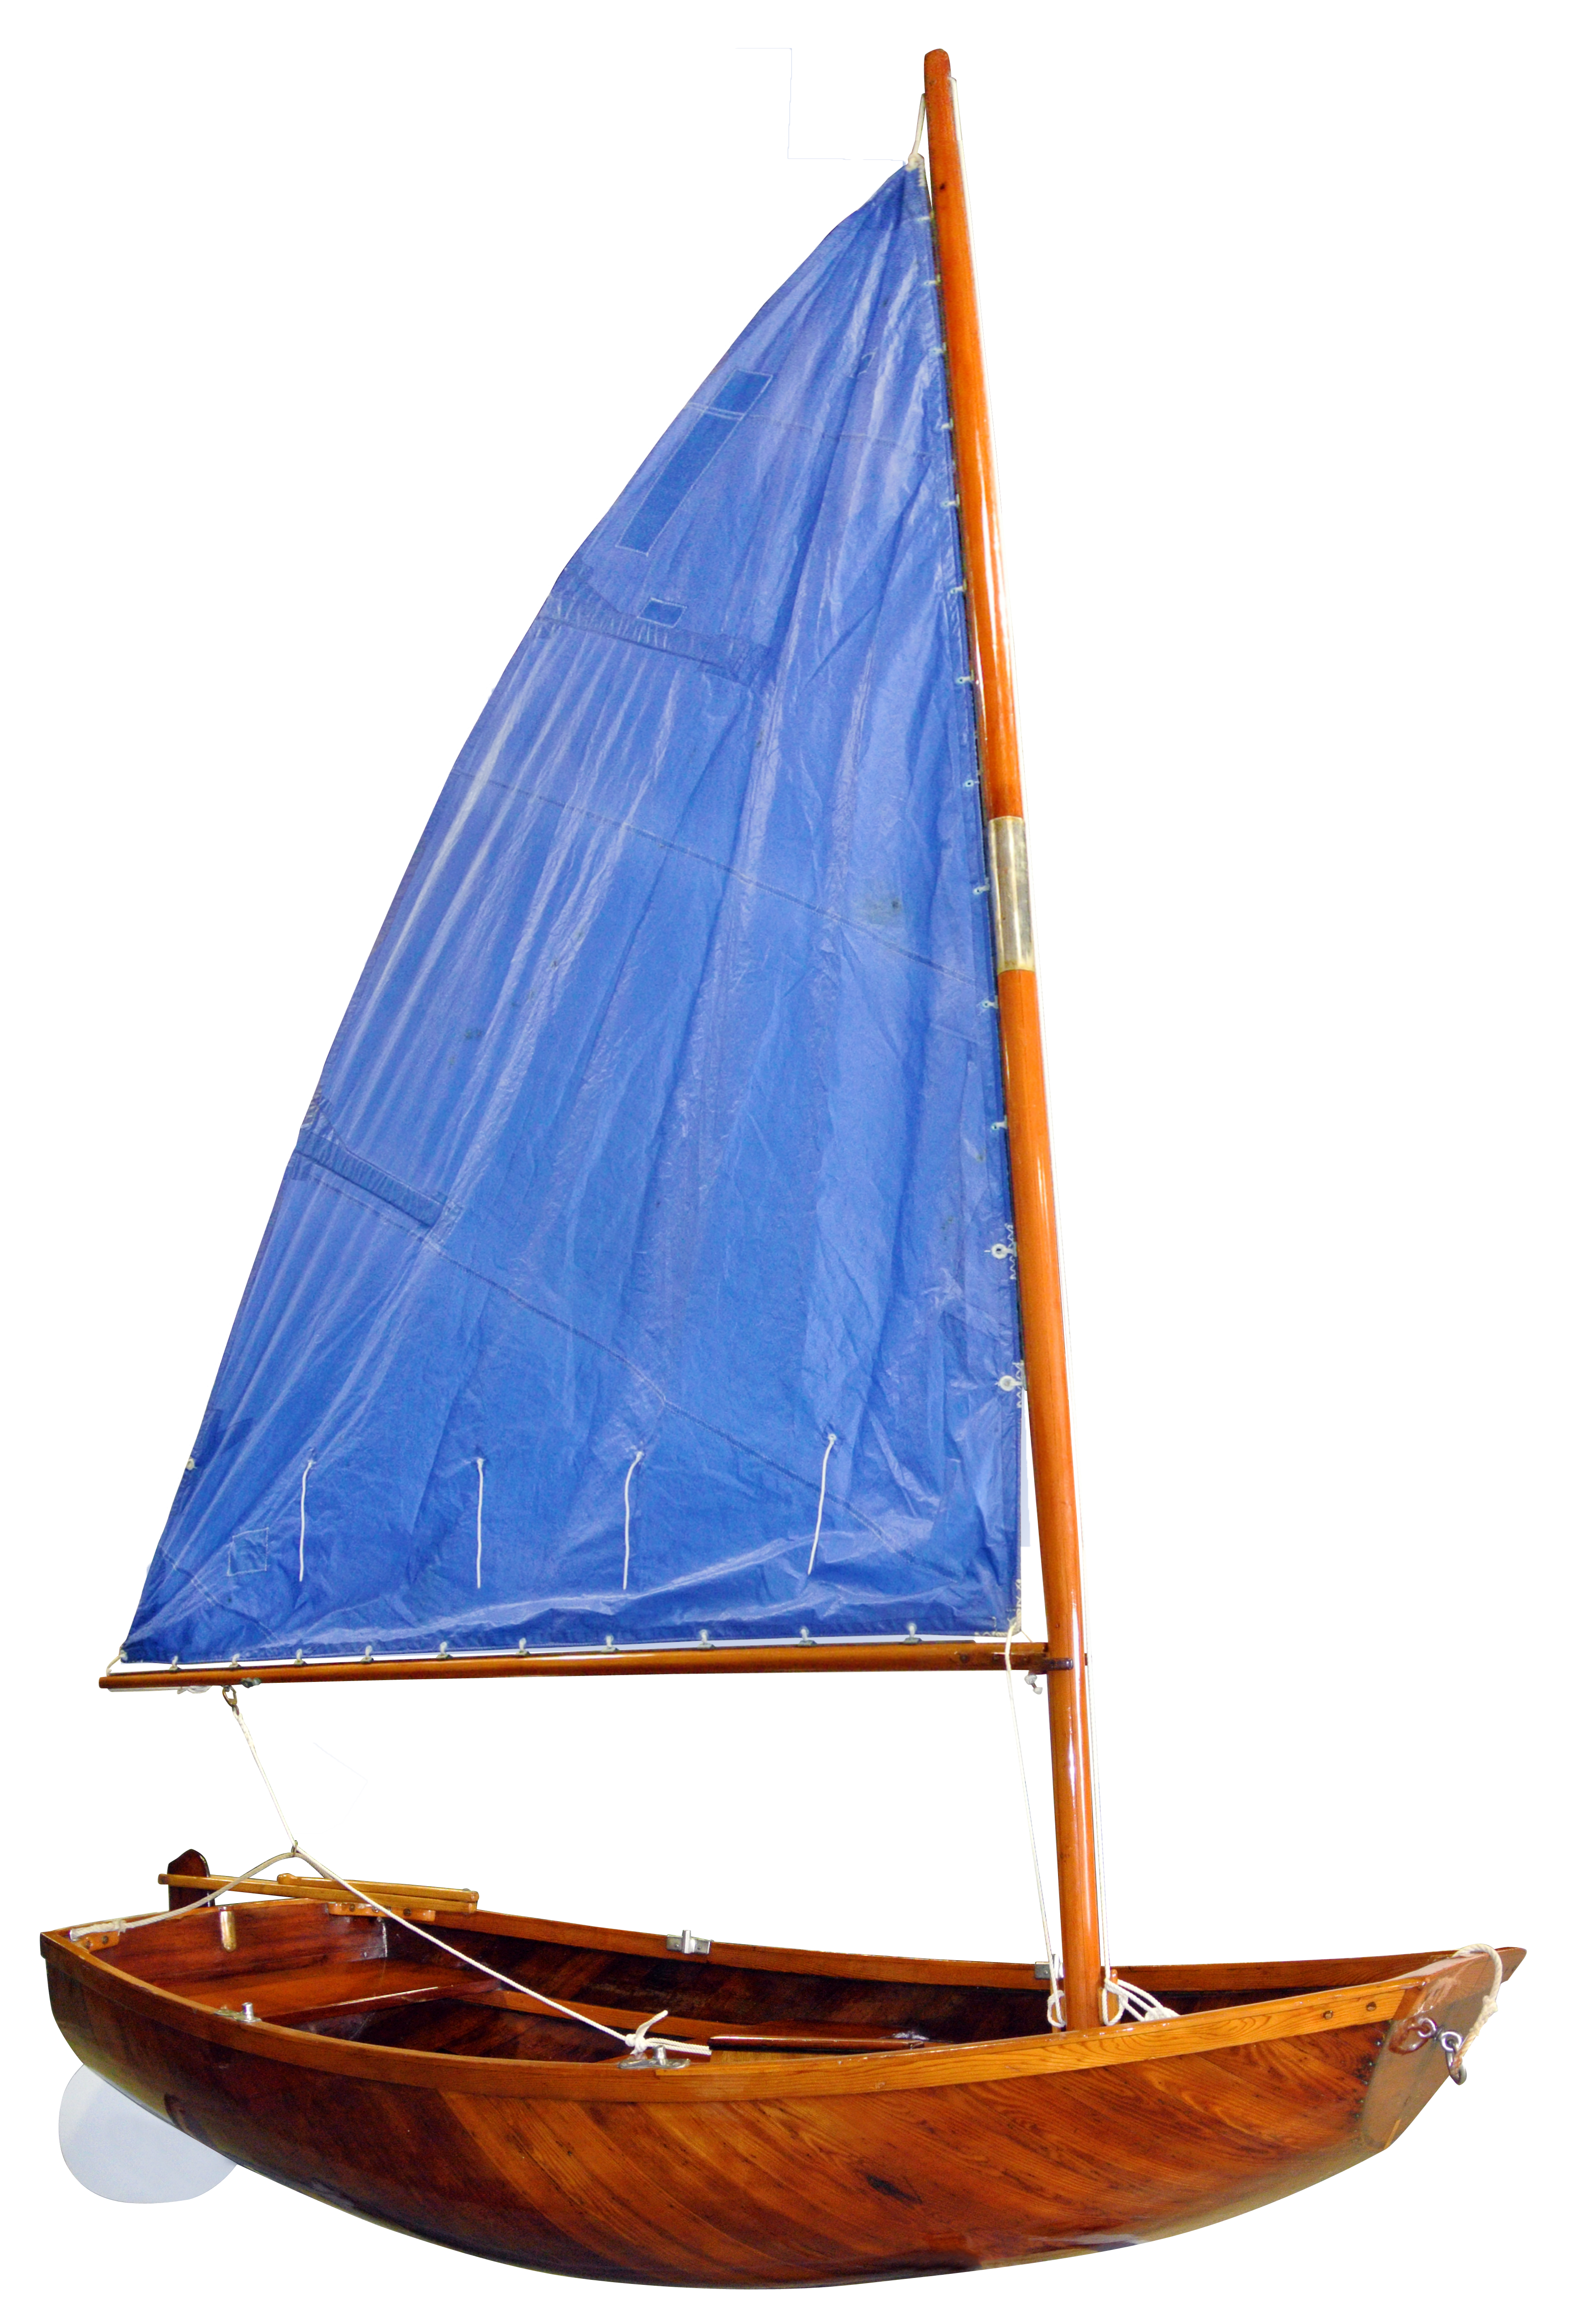 Sailboat clipart png. Hd transparent images pluspng